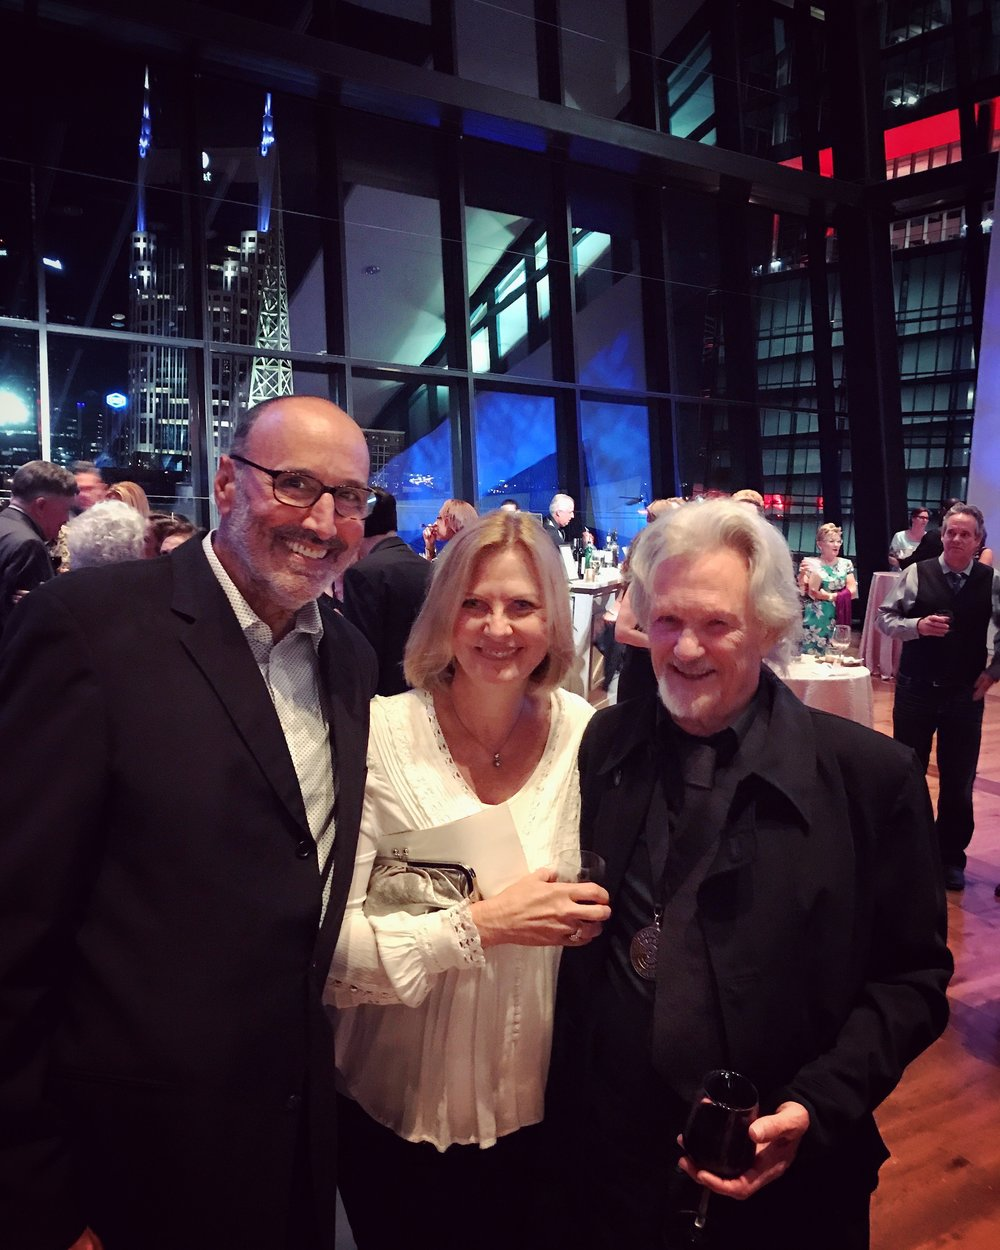 Mark and his wife Cindy with singer/songwriter/actor Kris Kristofferson